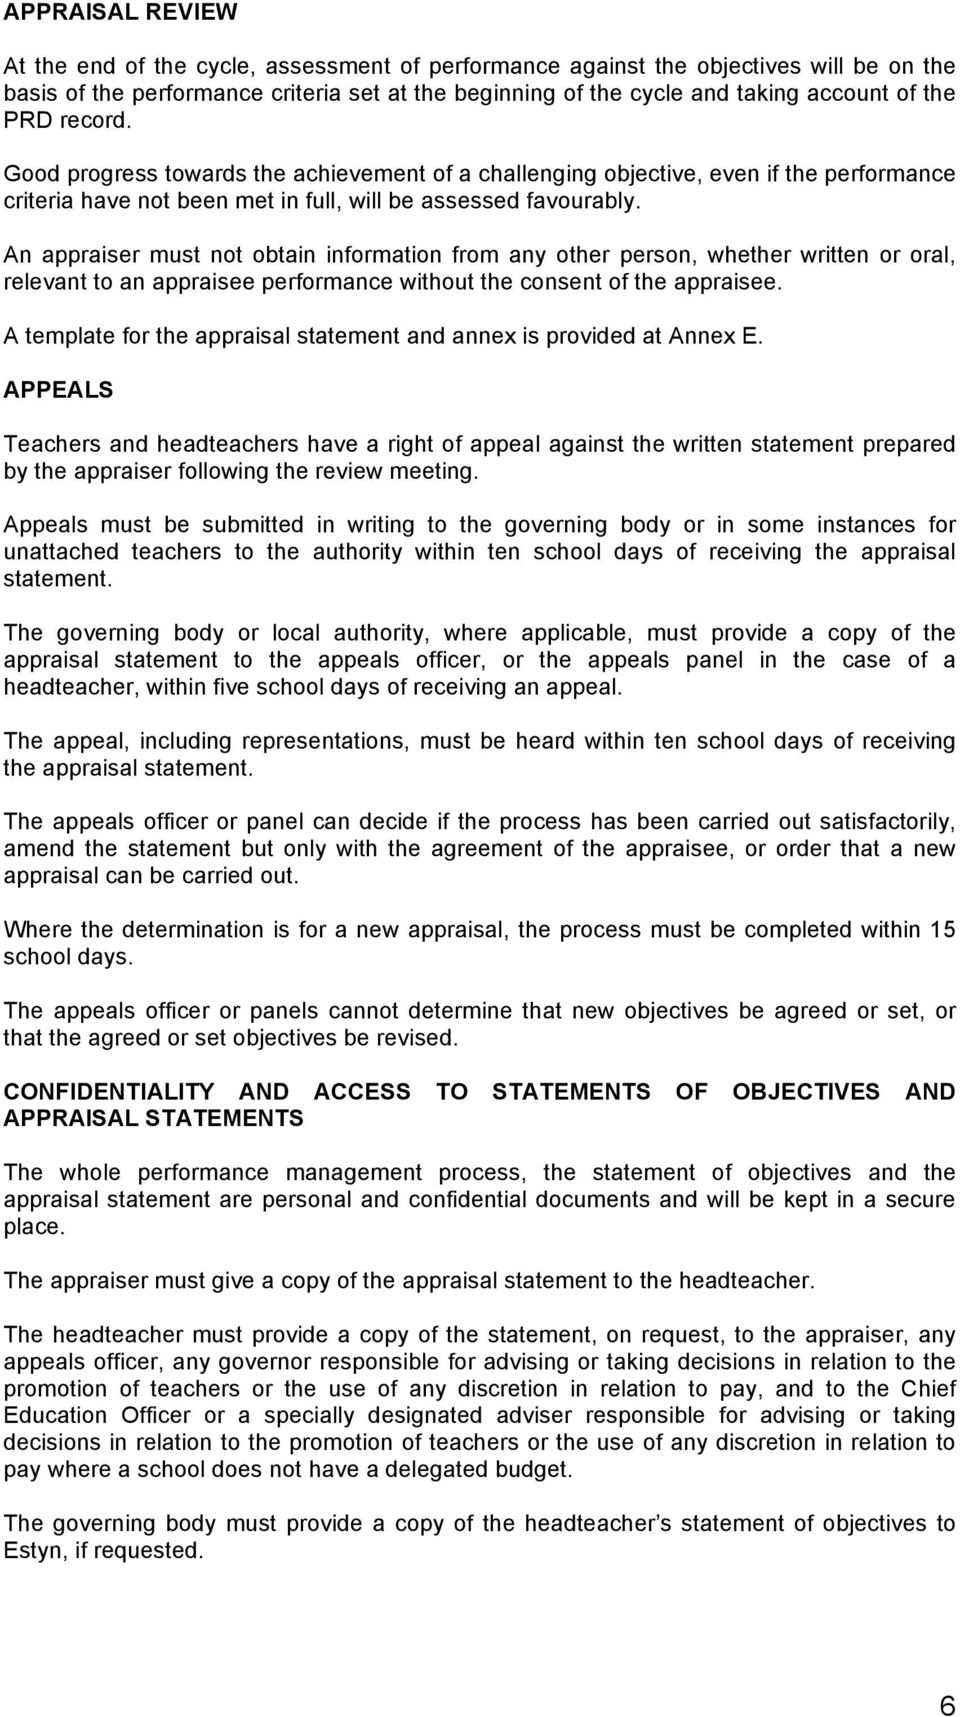 An appraiser must not obtain information from any other person, whether written or oral, relevant to an appraisee performance without the consent of the appraisee.